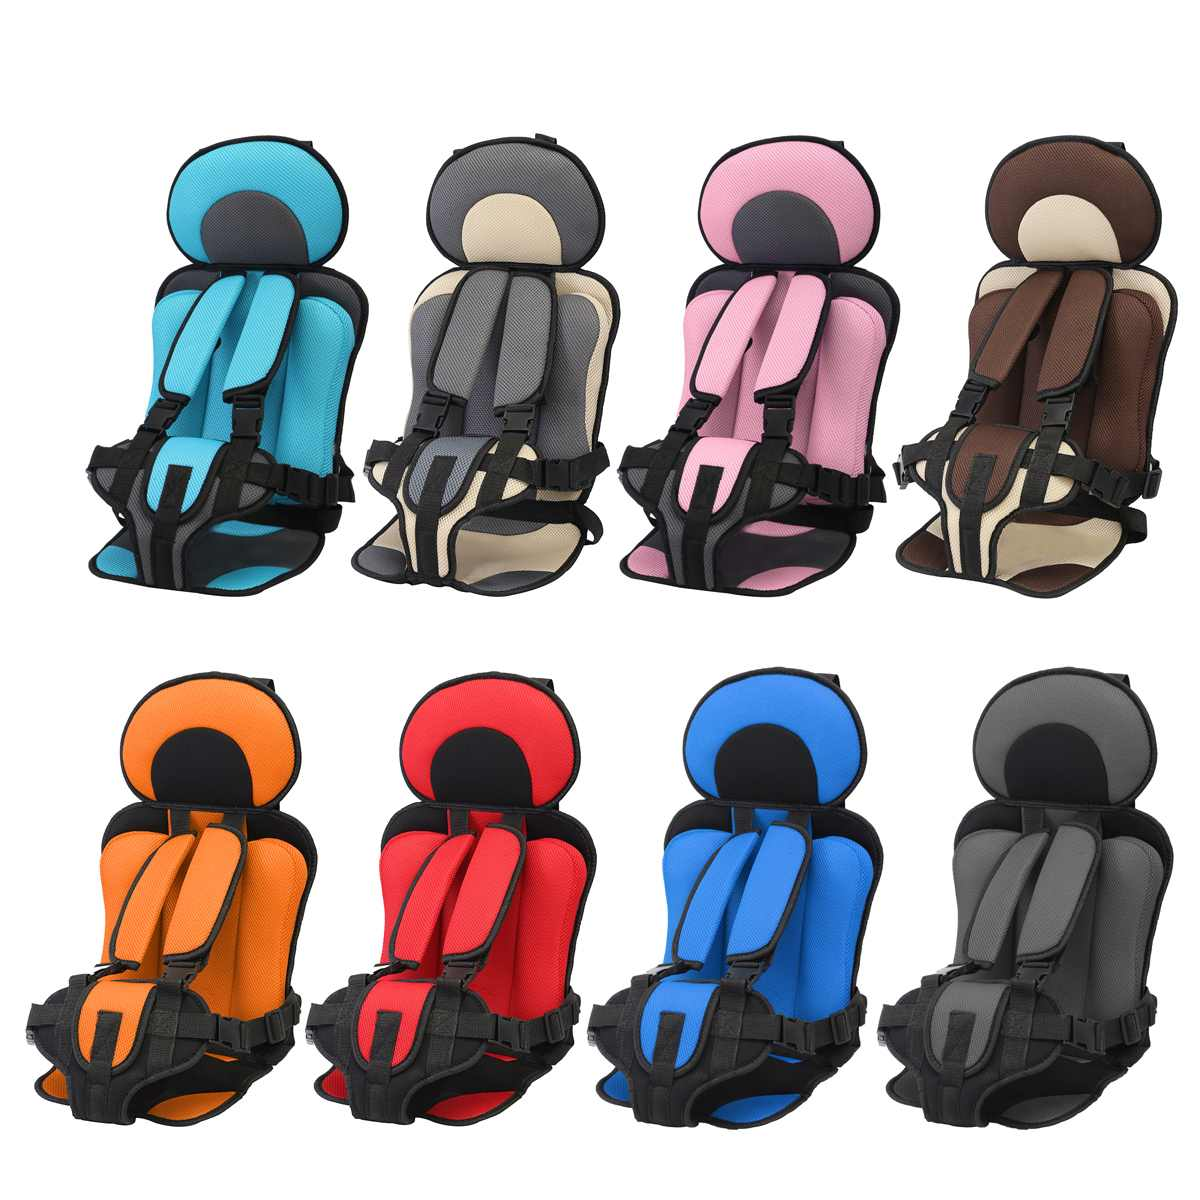 6~12 year old kids Car Seat Portable Baby Seat Children's Chairs Updated Version Thickening Sponge Kids Child Car Seats Big size